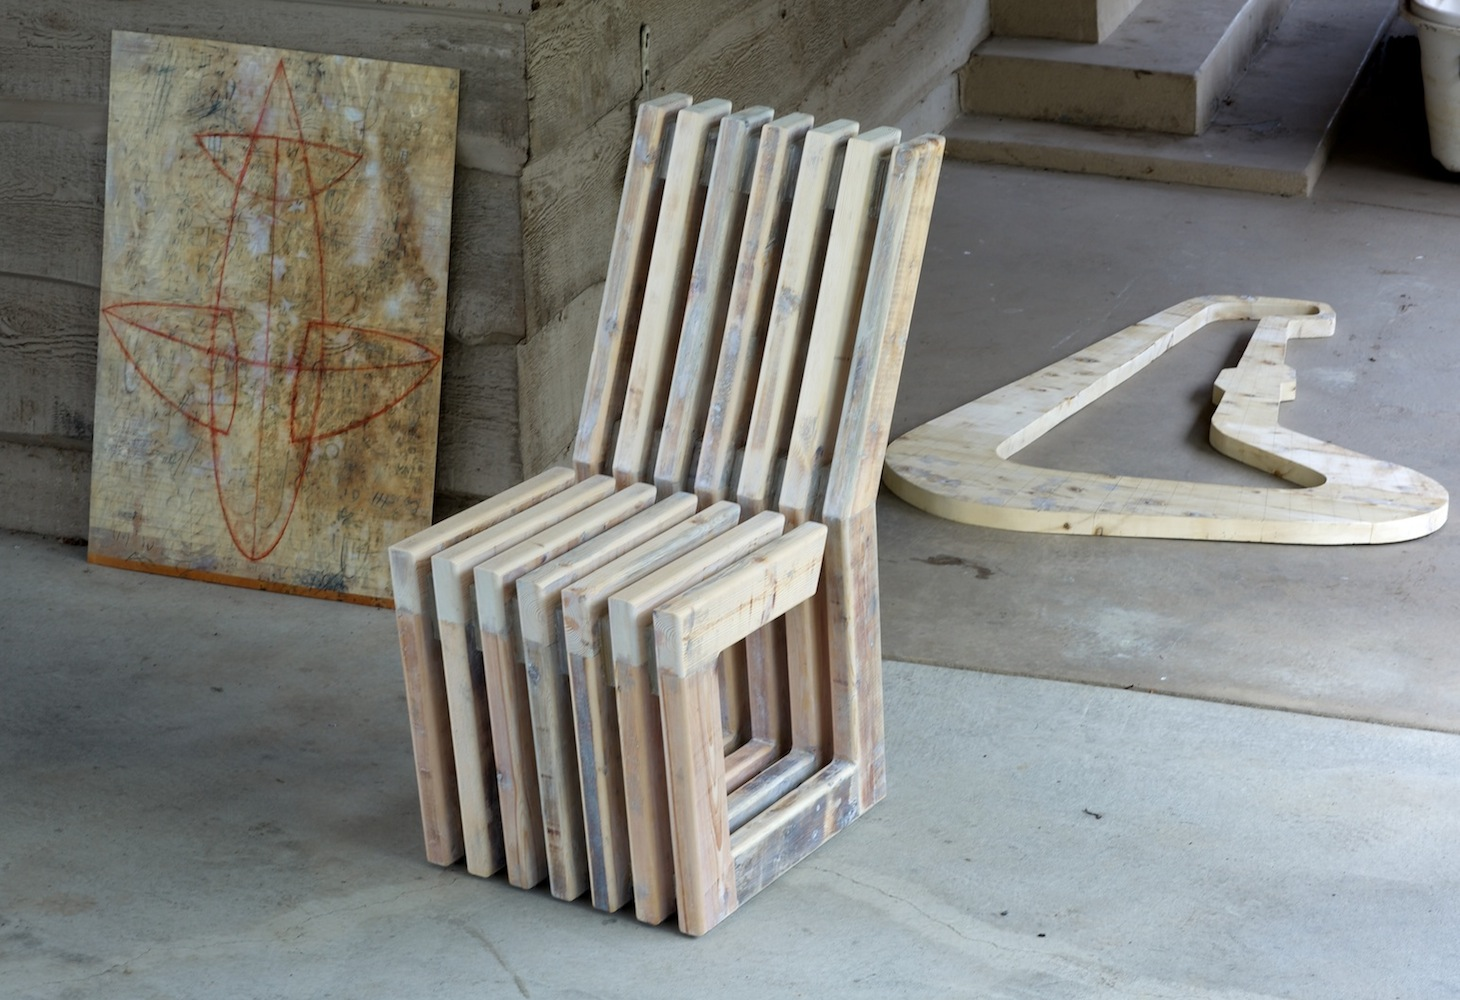 Gap-Chair No.5 with Zomb drawing and unfinished wall object copy